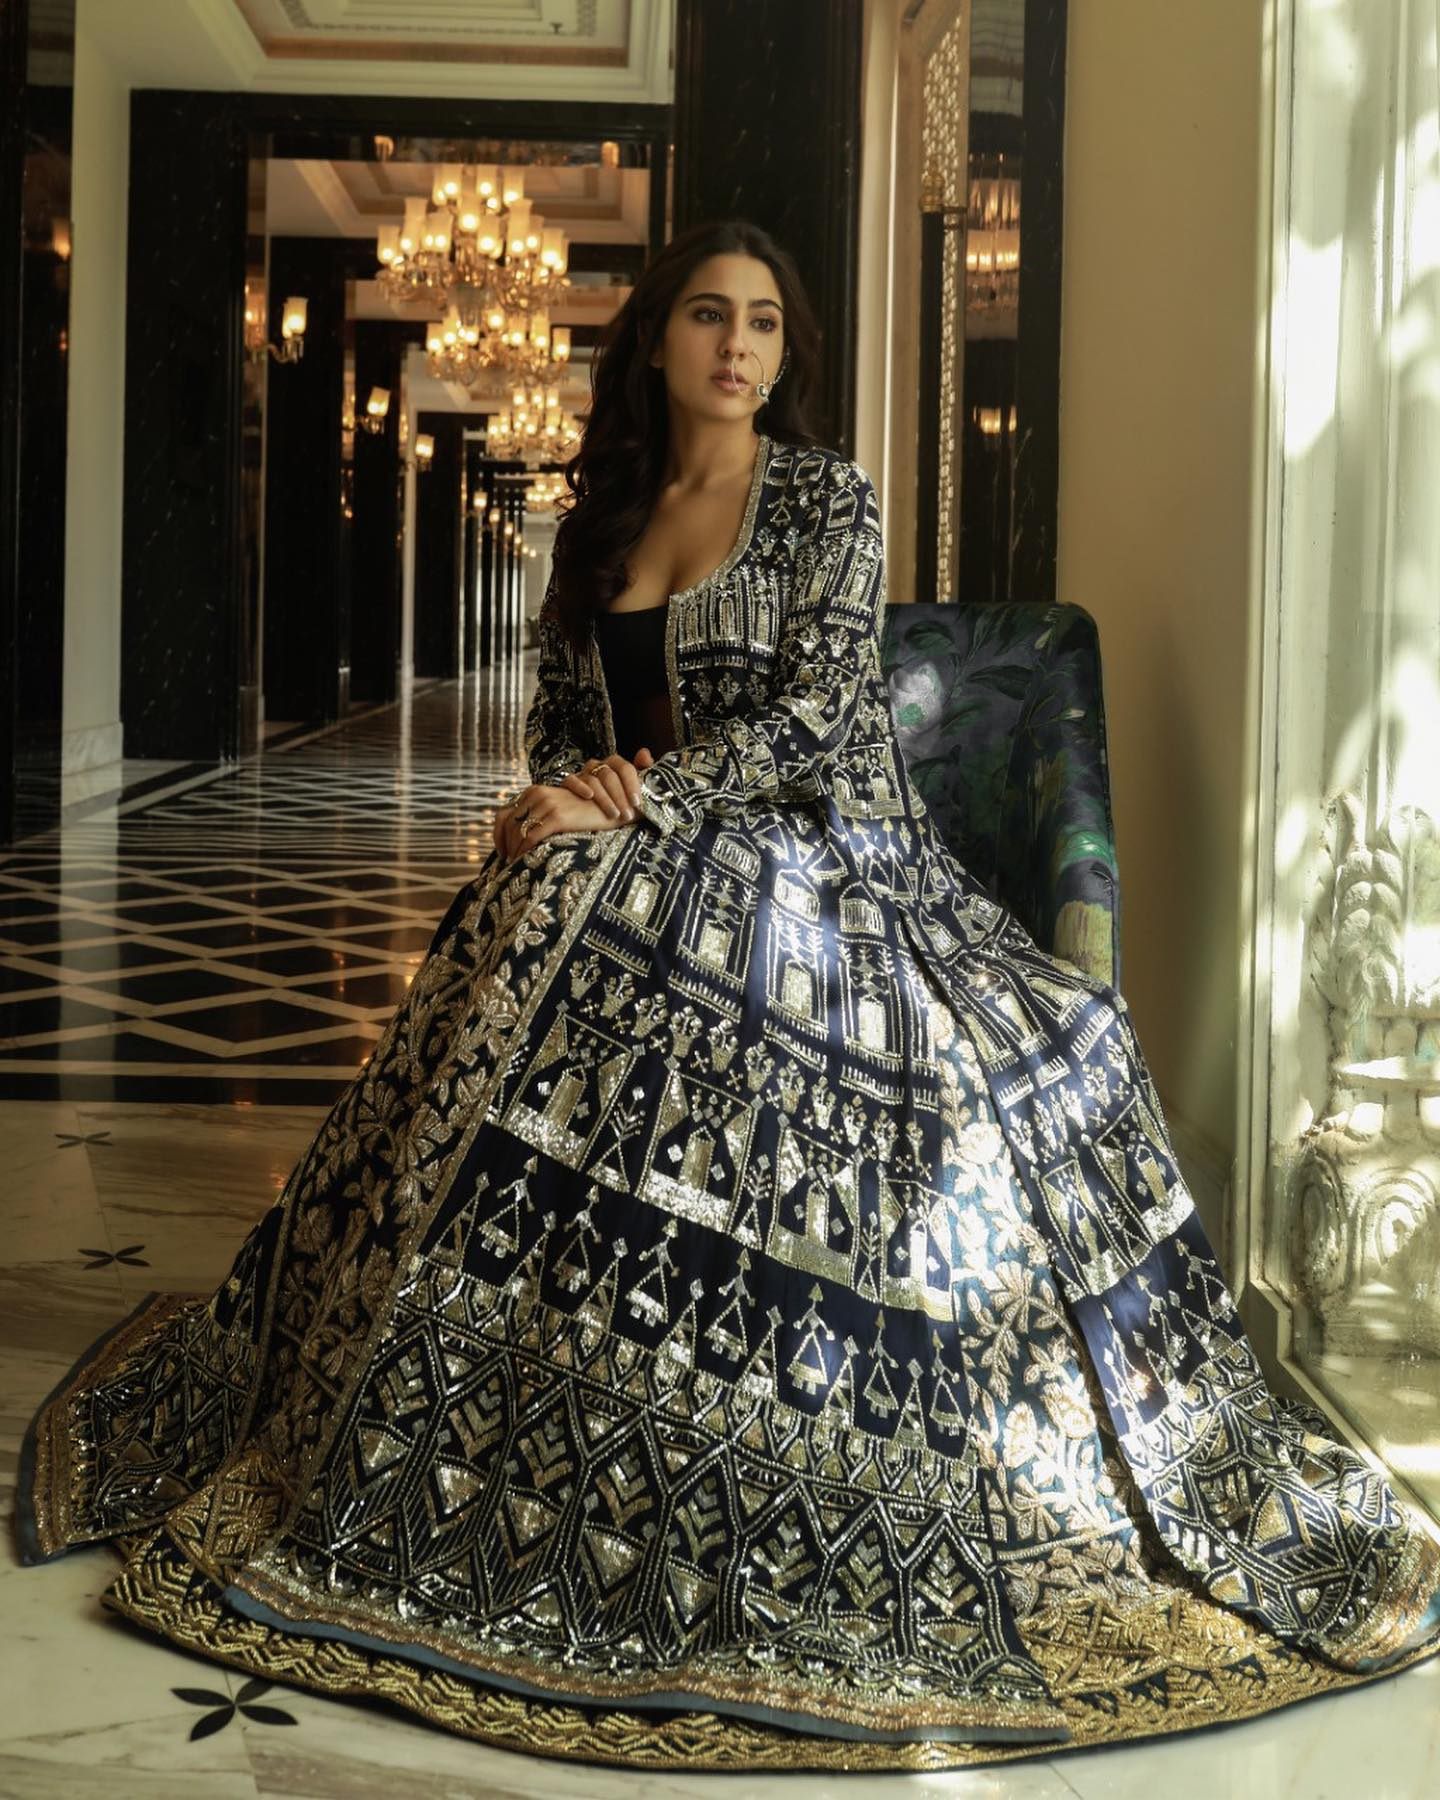 Sara Ali Khan The New-Age Noor of Nooraniyat unearthing the unseen glorious textures architecture patterns and imperial hues that unite in our grand twirling escapade. For queries please email  at support@manishmalhotra.in Available via virtual consultant on:  Virtual Consultant: +91 93219 92634 Mumbai: +91-9987719978 / +91-9833946835 Delhi: +91-9818684859 / +91-9811926066 Hyderabad: +91 8828234488 / +91 9324358762 2021-06-16